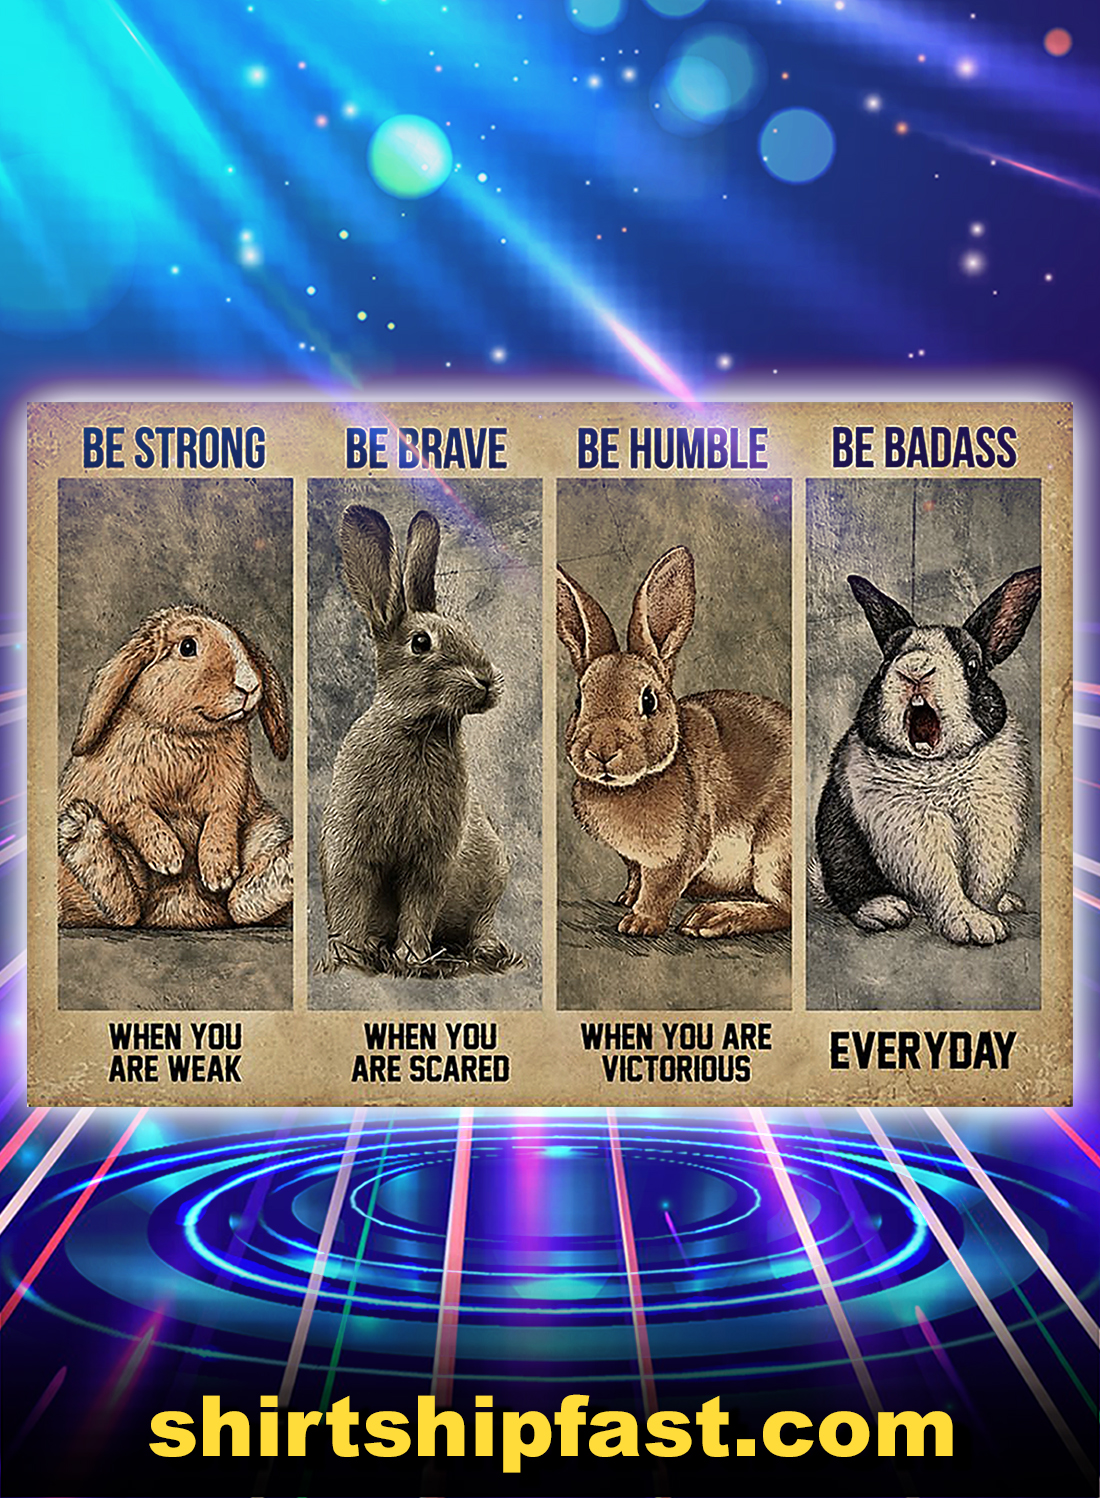 Be strong be brave be humble be badass rabbit poster - A4